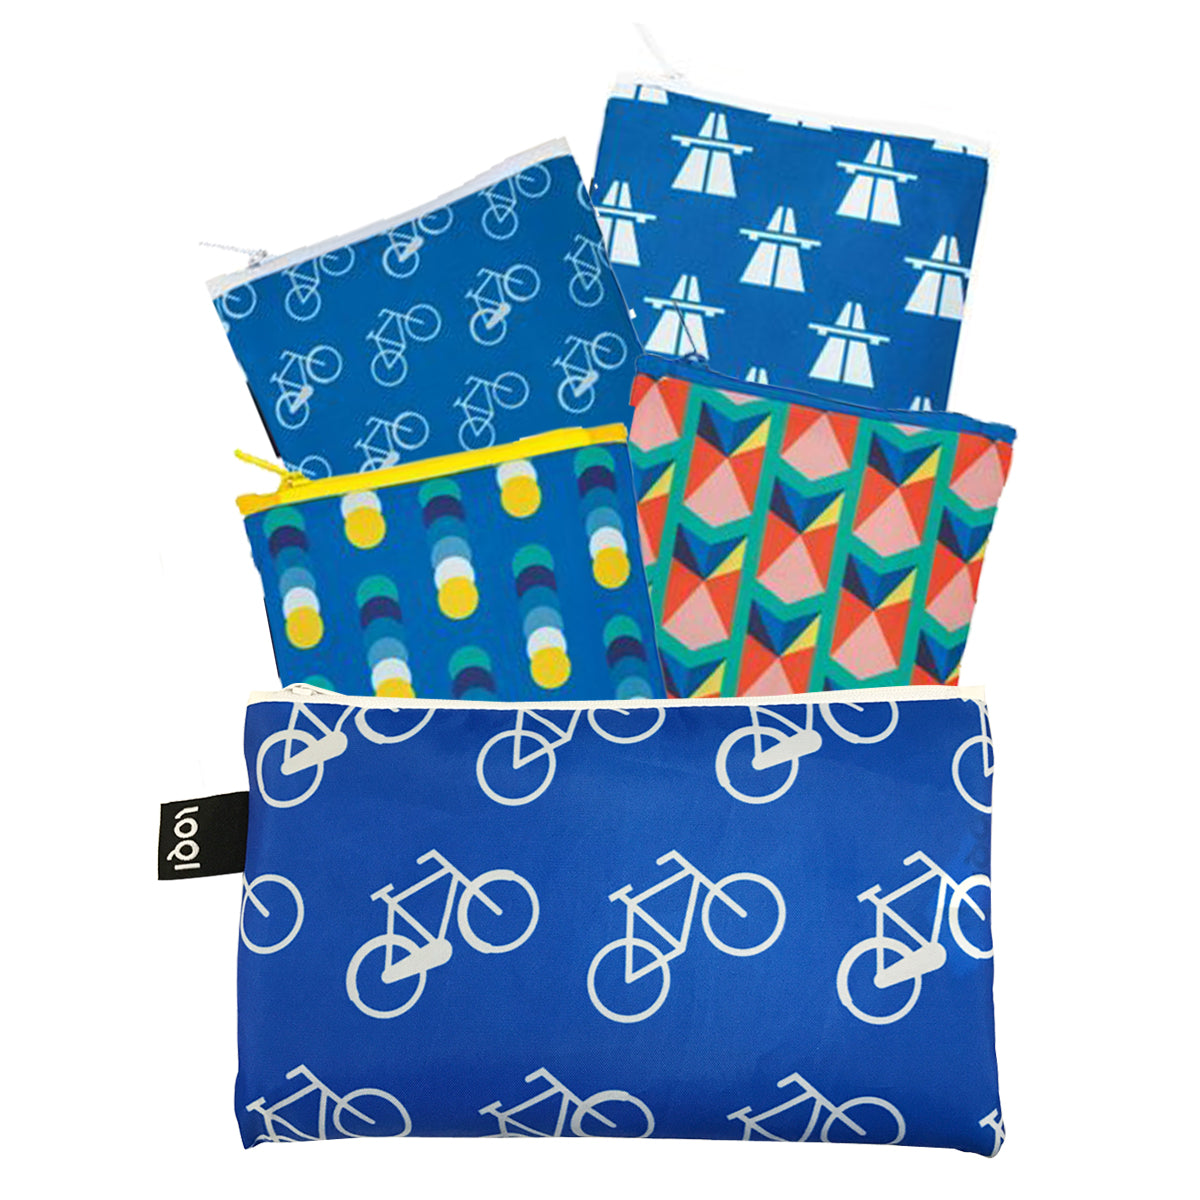 LOQI Geometric Travel Collection Pouch, Set of 4 Reusable Bags